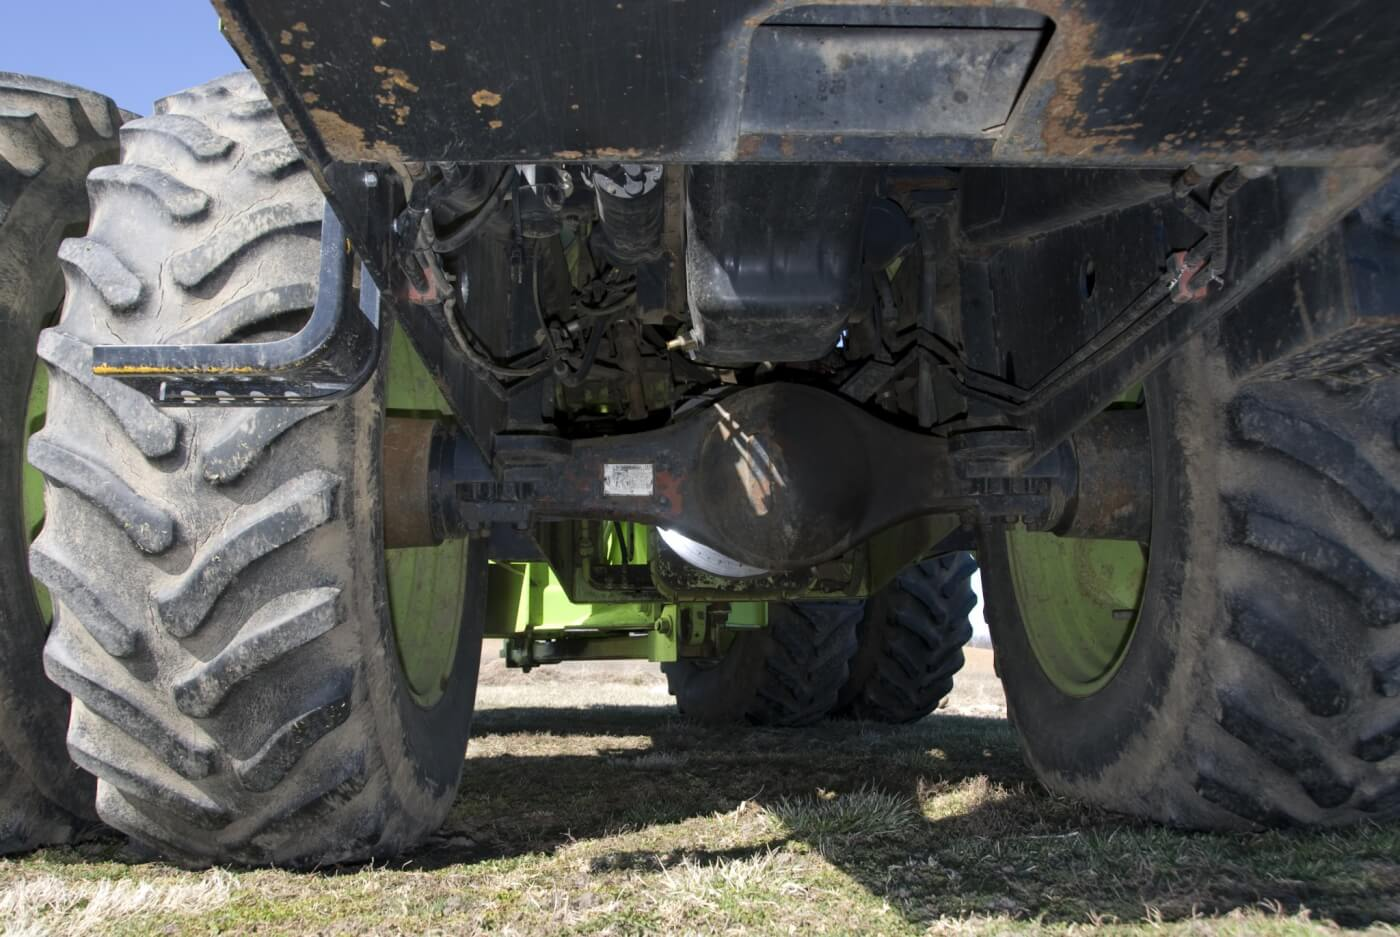 RABA makes the axles, which feature single or double reduction hubs. They're made in Hungary at a licensed Steiger tractor plant.